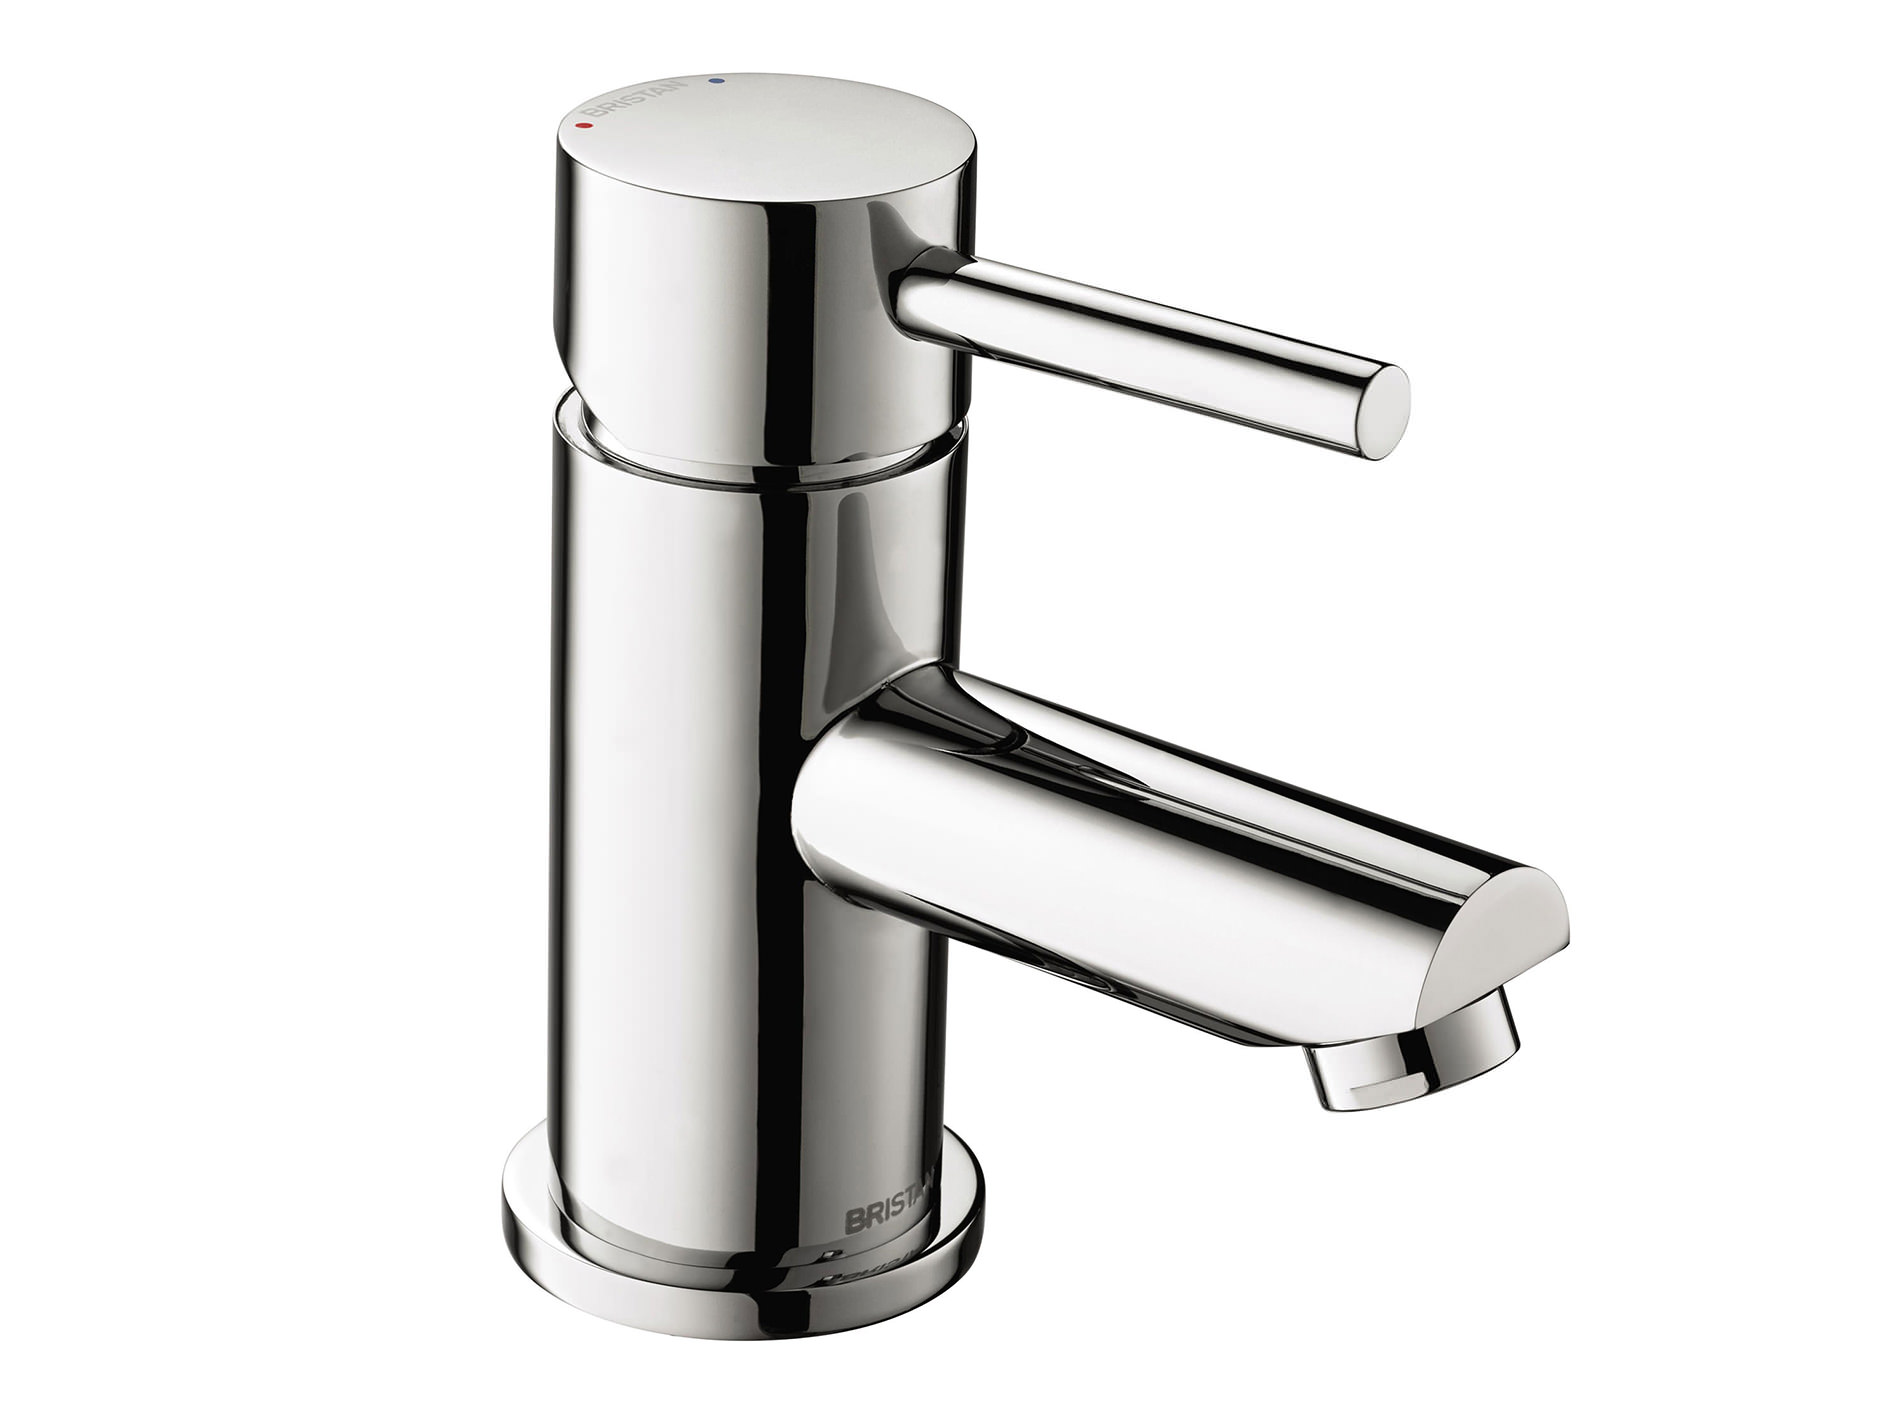 Bristan Blitz Basin Mixer Tap With Clicker Waste Btz Bas C